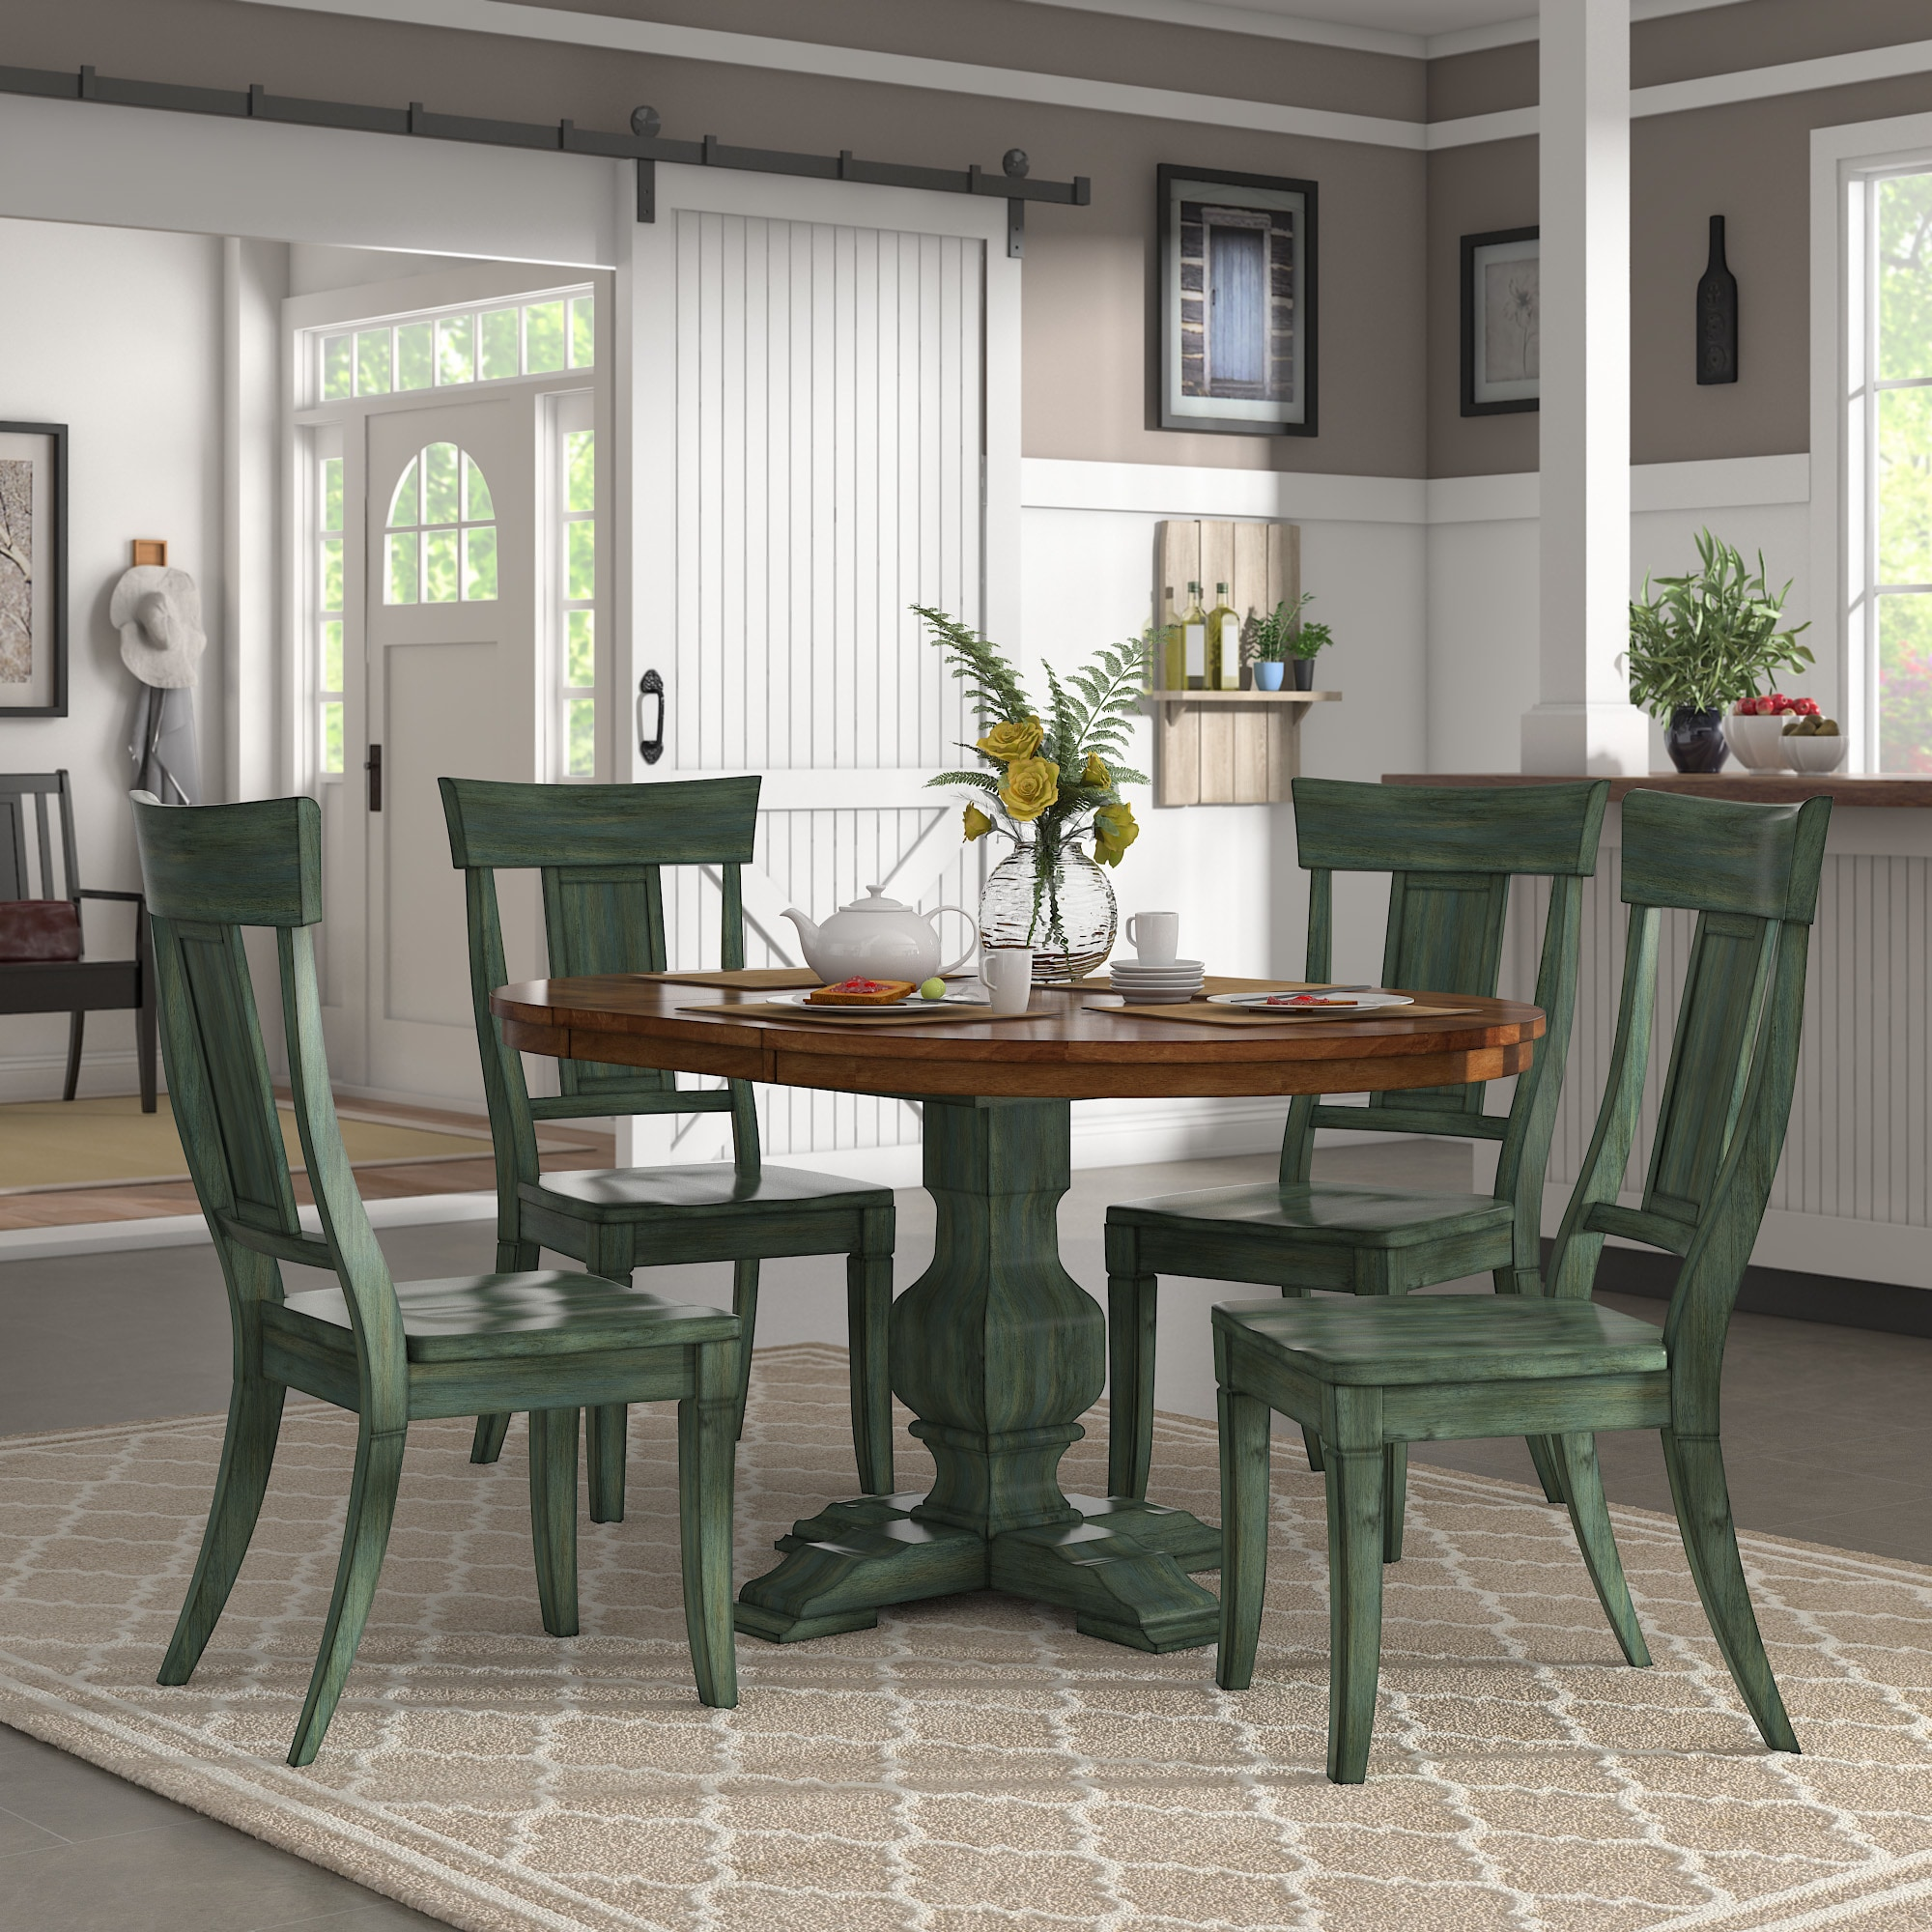 Eleanor Sage Green Extending Oval Wood Table Panel Back 5 Piece Dining Set By Inspire Q Classic Overstock 16940137